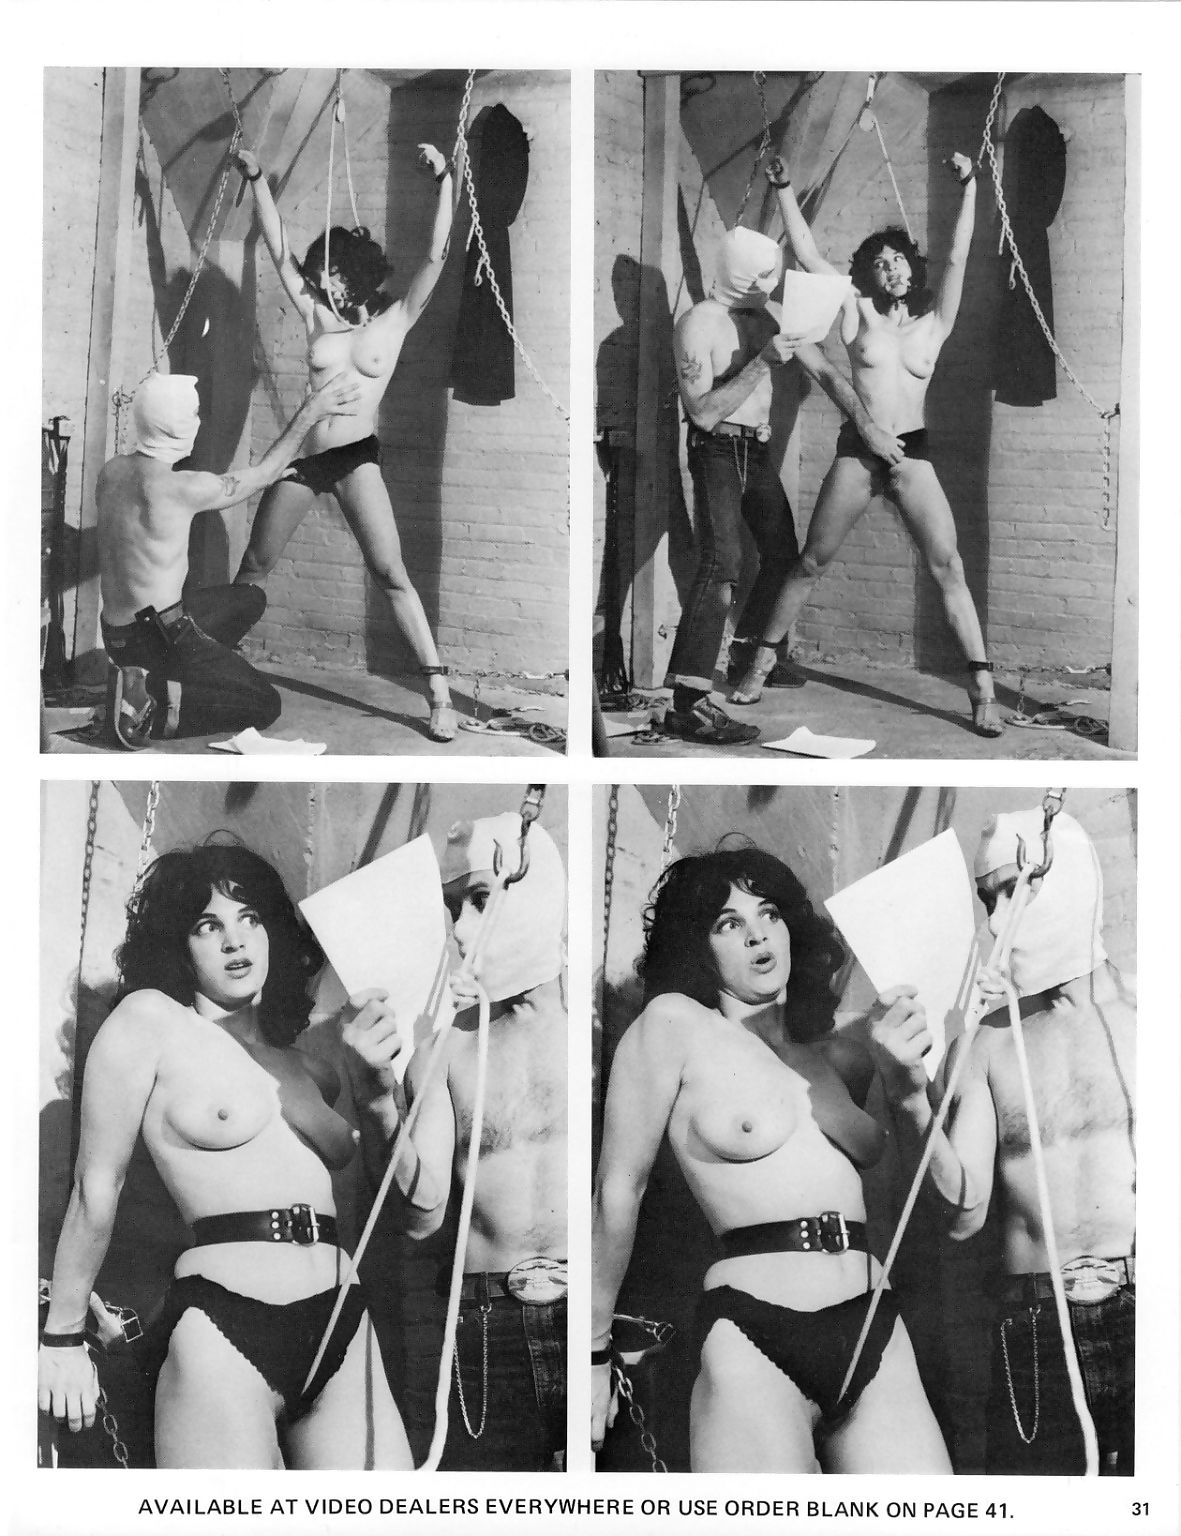 Retro bdsm porn pictures - part 234